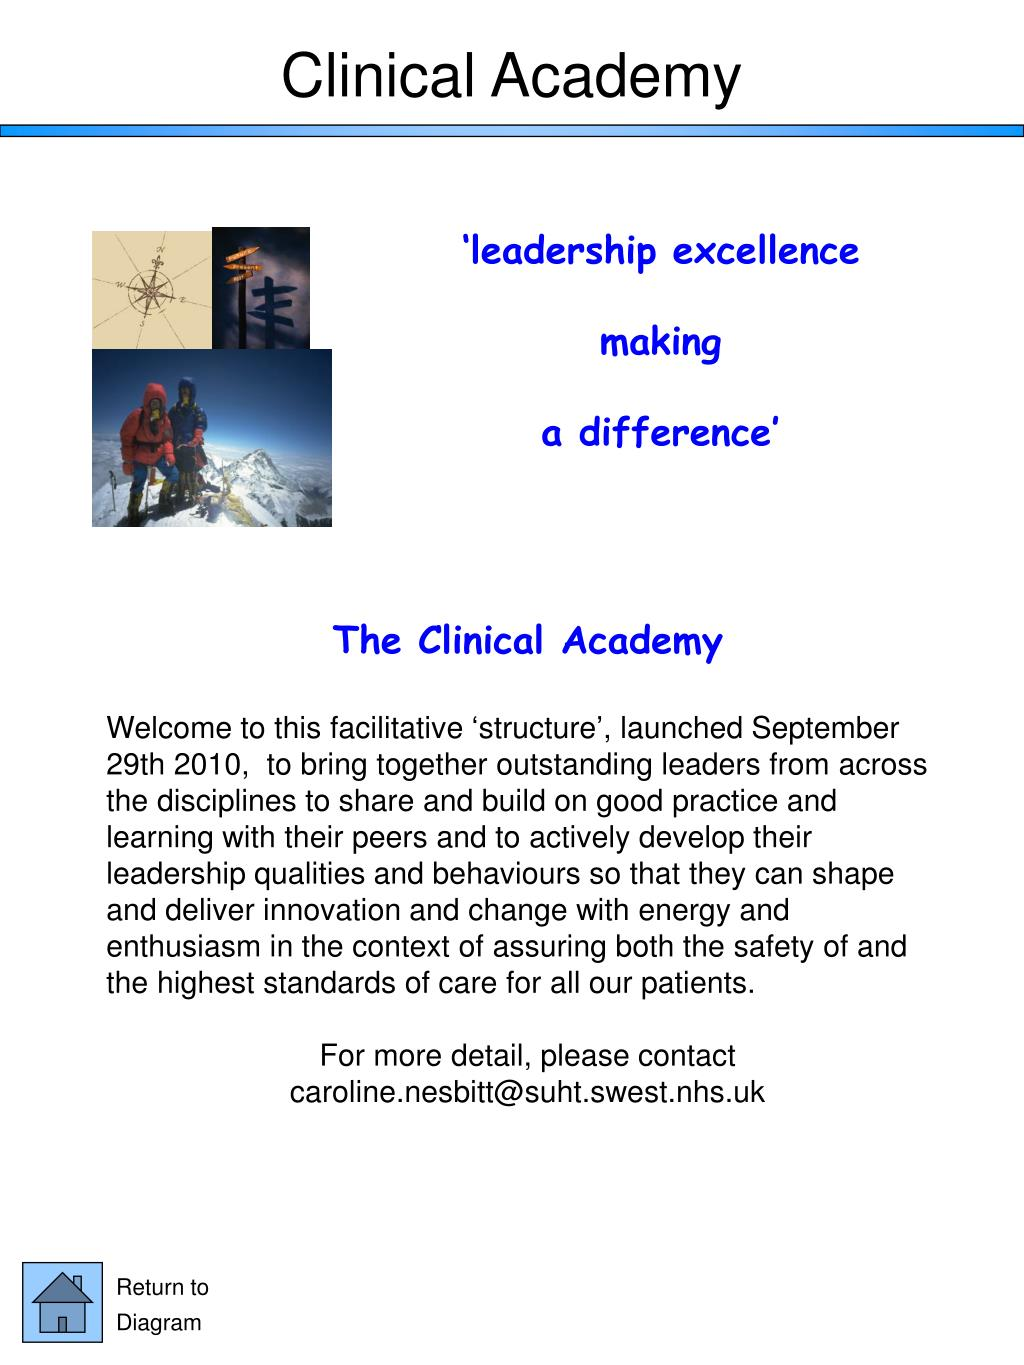 Clinical Academy